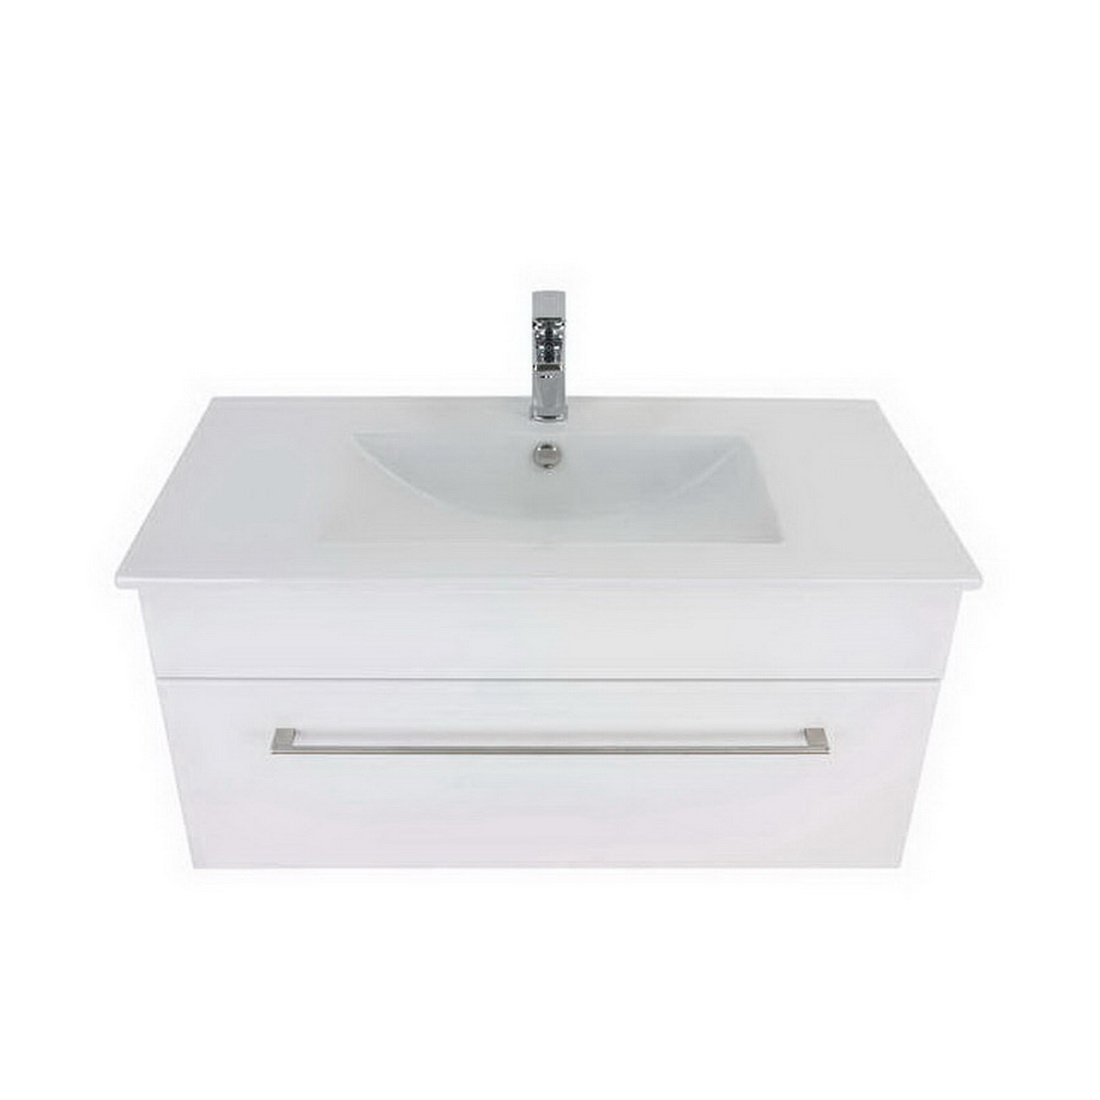 Montana Citi Ceramic Wall-Hung Vanity 900mm Gloss White